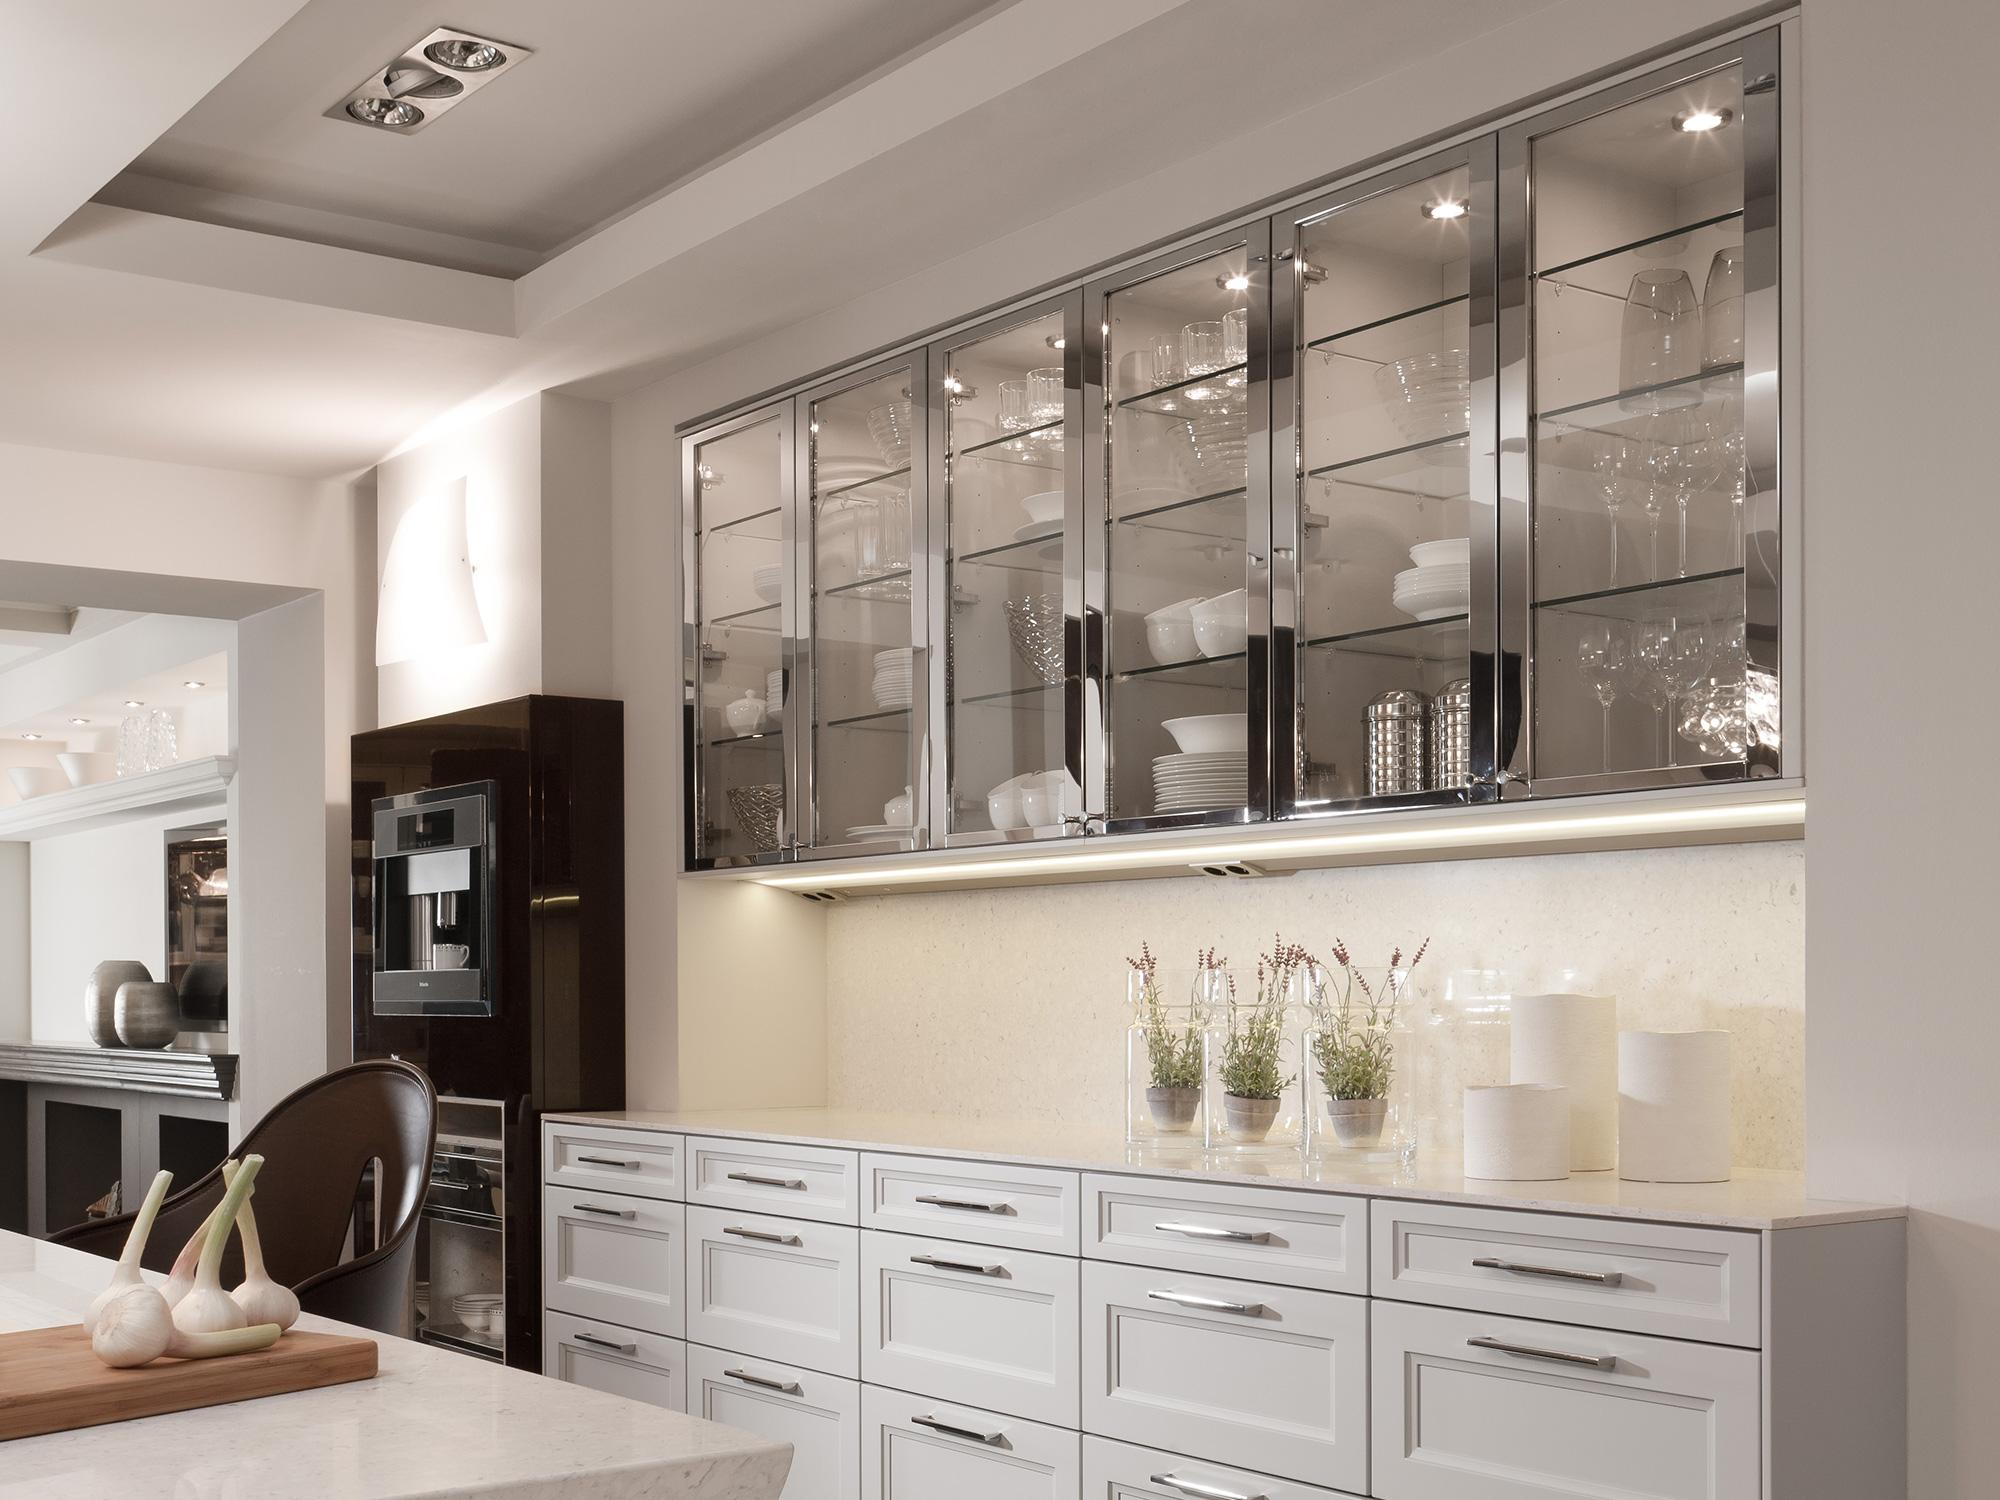 SieMatic BeauxArts.02 #küche ©SieMatic